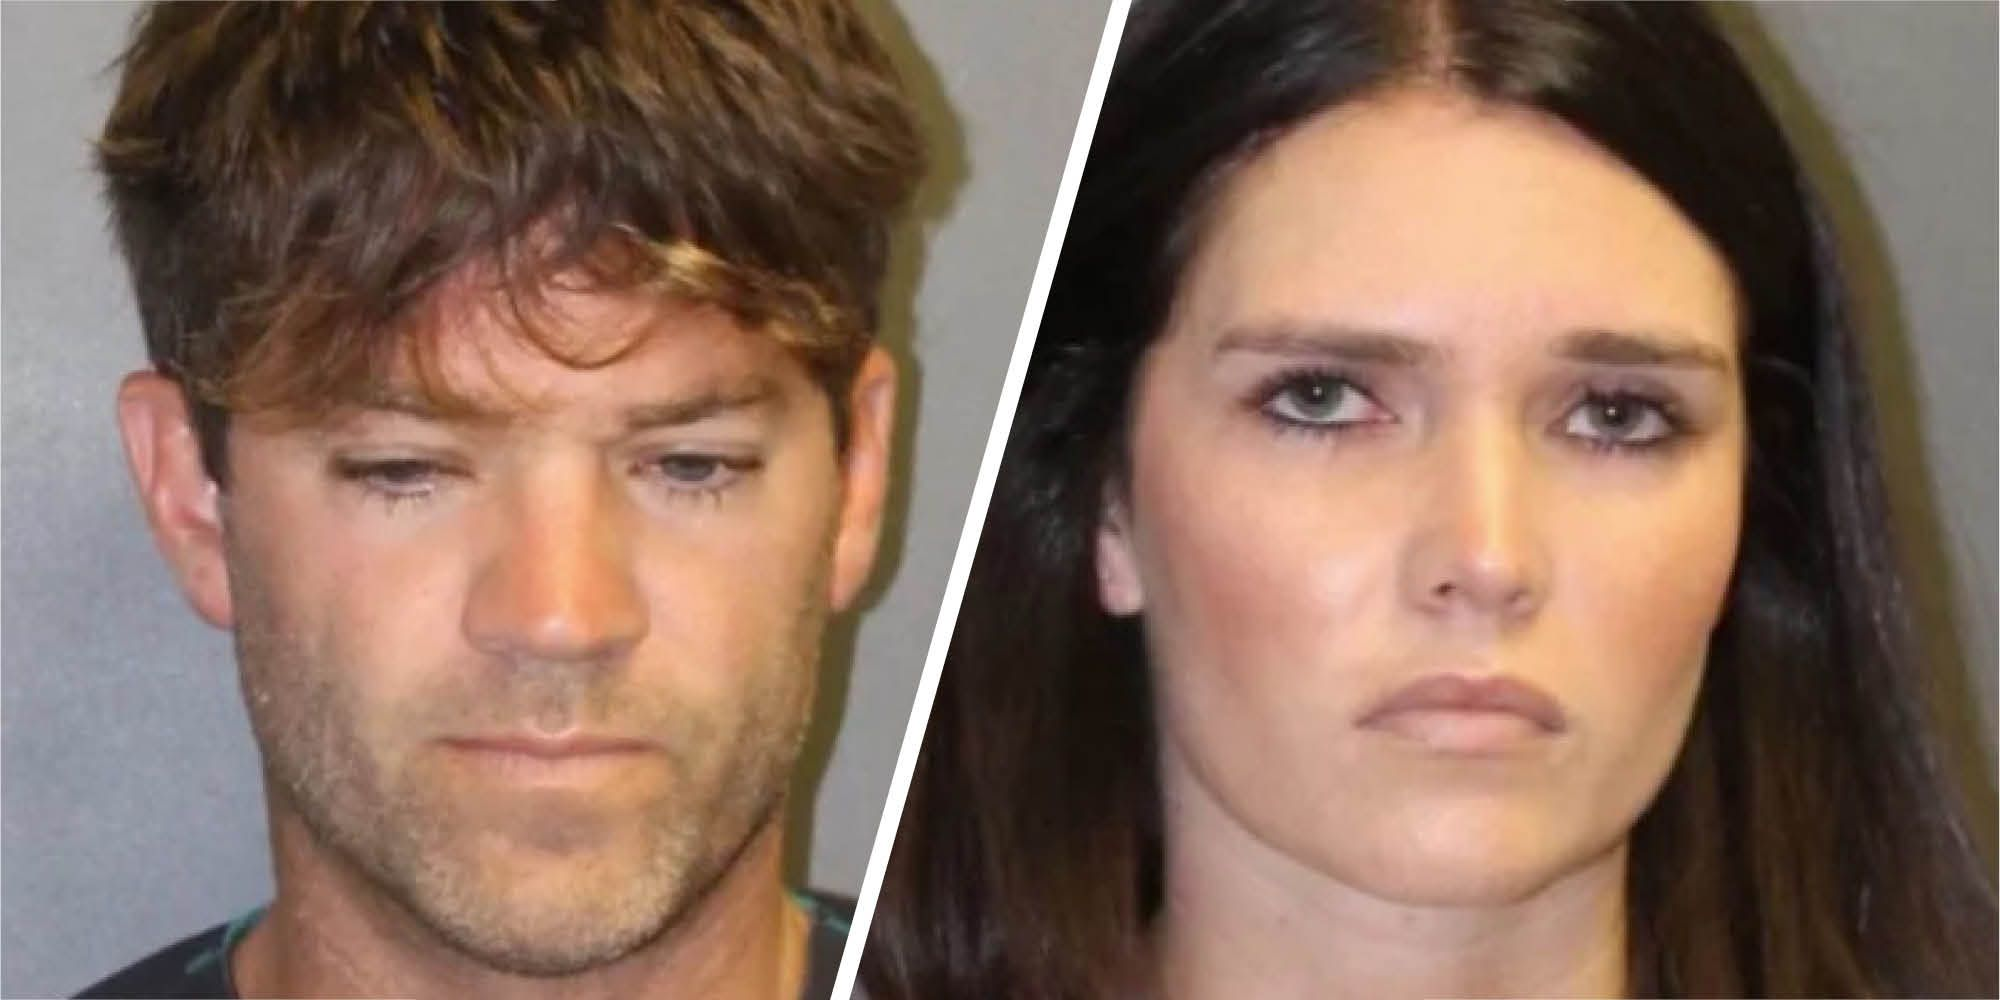 Grant Robicheaux,Cerissa Riley charged with raping woman Grant Robicheaux,Cerissa Riley charged with raping woman new pics